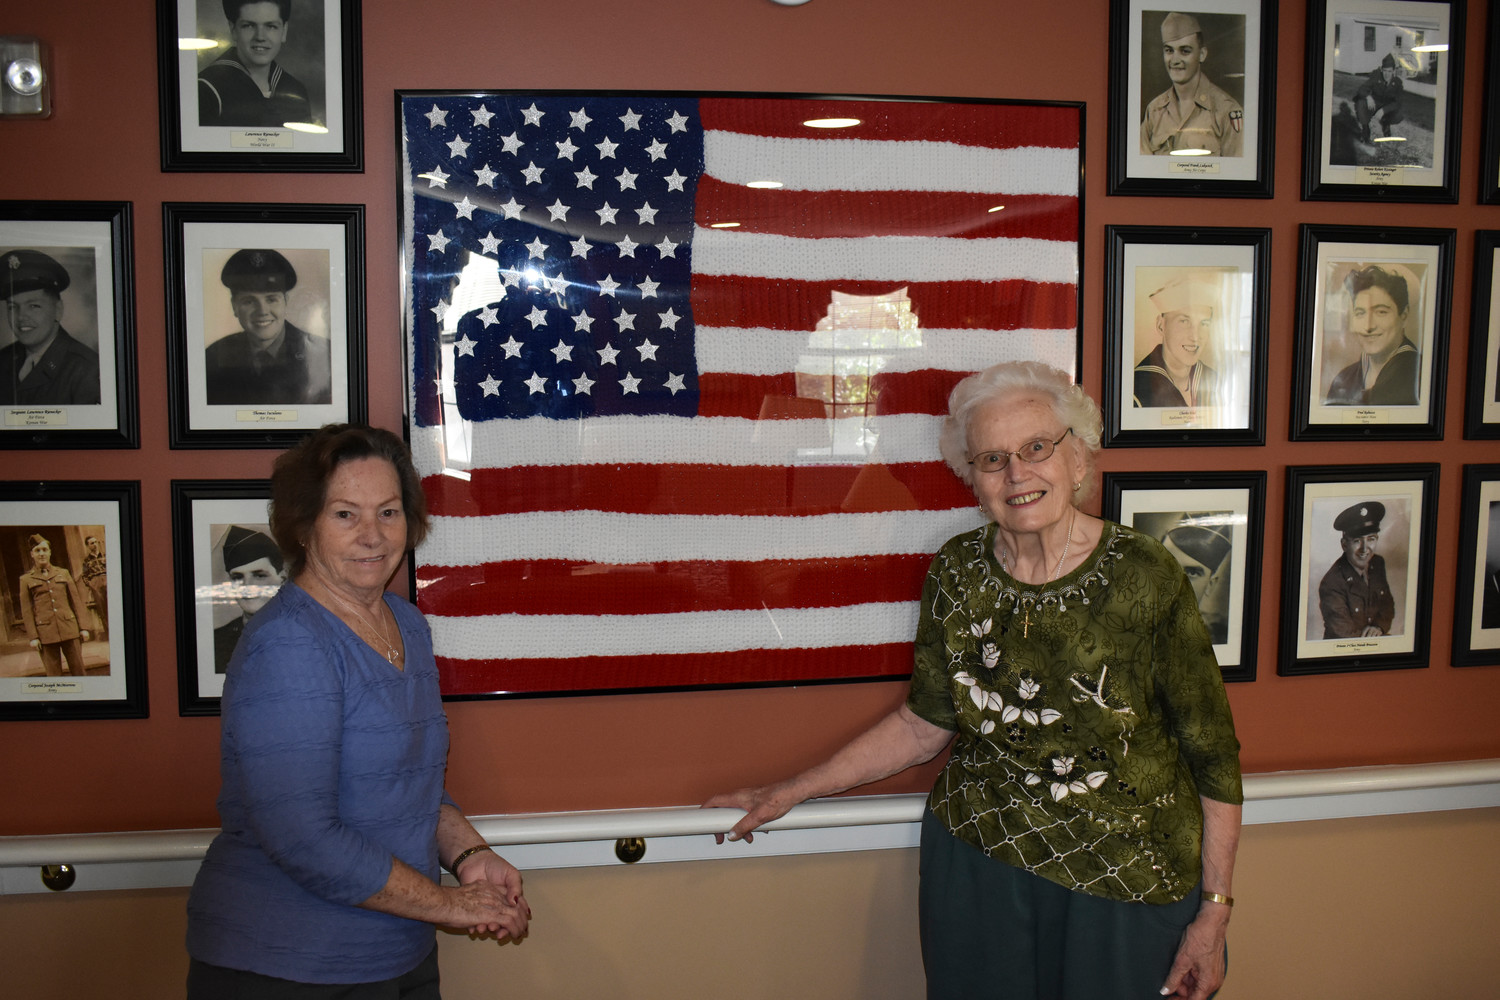 Gloria Rodriguez, left, and Kathryn Chalavoutis, residents at Maple Pointe Assisted Living in Rockville Centre, spent a few months crocheting the American flag that now hangs in a room dedicated to veterans on the center's second floor.